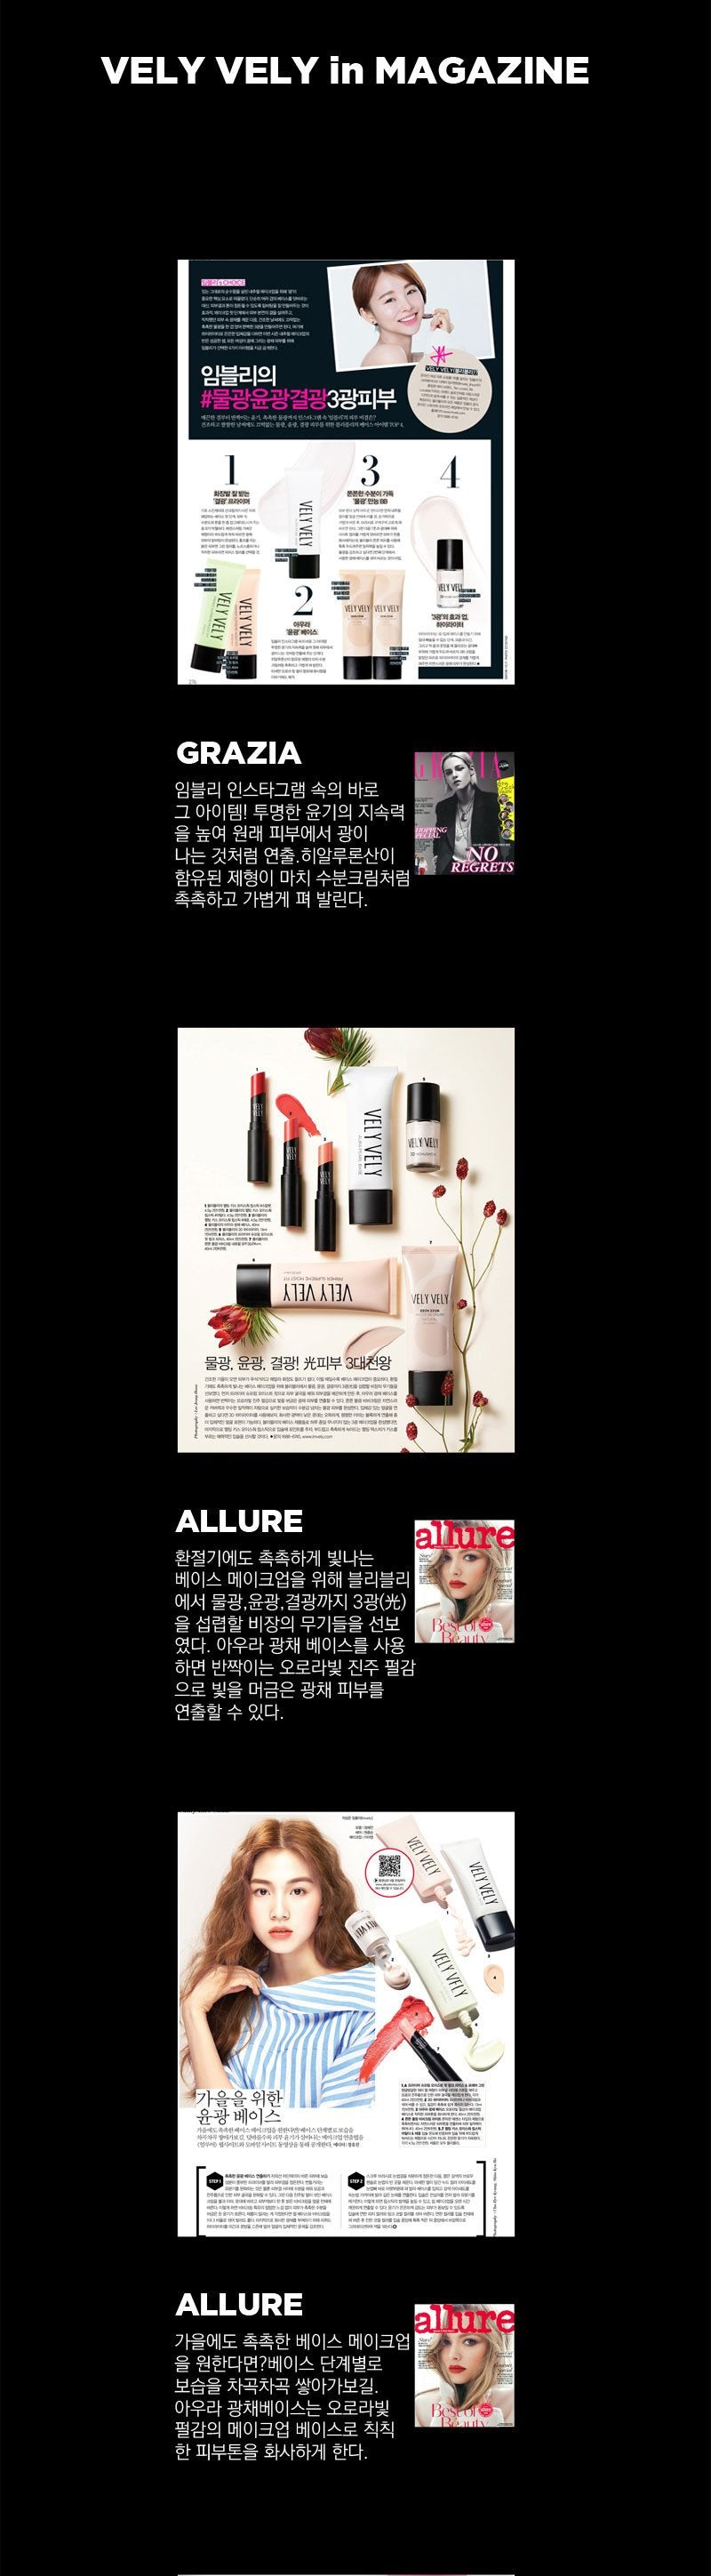 Aura Pearl Base featured on magazines best seller